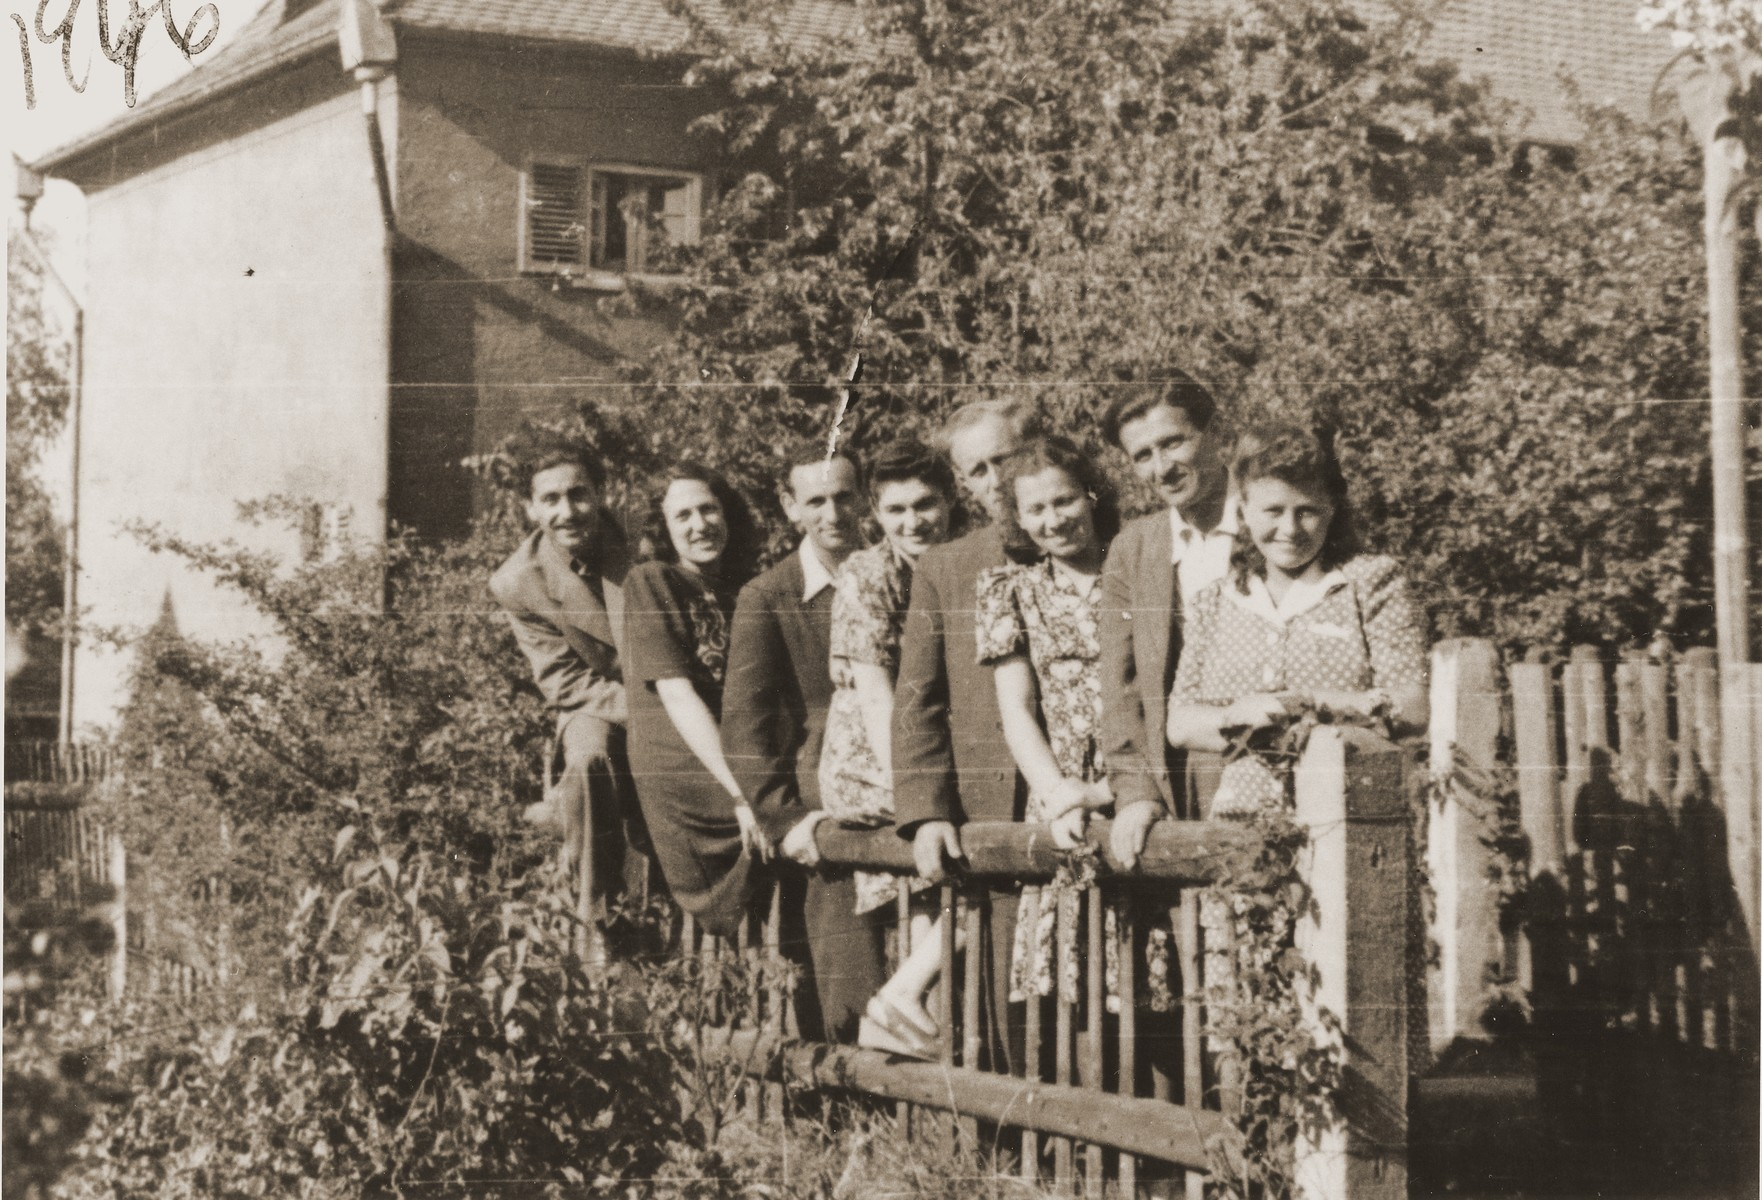 Group portrait of young Jewish couples in the Fuerth displaced persons camp.   Pictured from left to right are: Josef Szrage; Thea Weisman Szrage; Henryk Lanceter; Eugenia (Hochberg) Lanceter; Max Schatz; Ann (Charash) Schatz; Phil (Filo) Batalion; and Fania Batalion.  All of the women but Ann are pregnant.